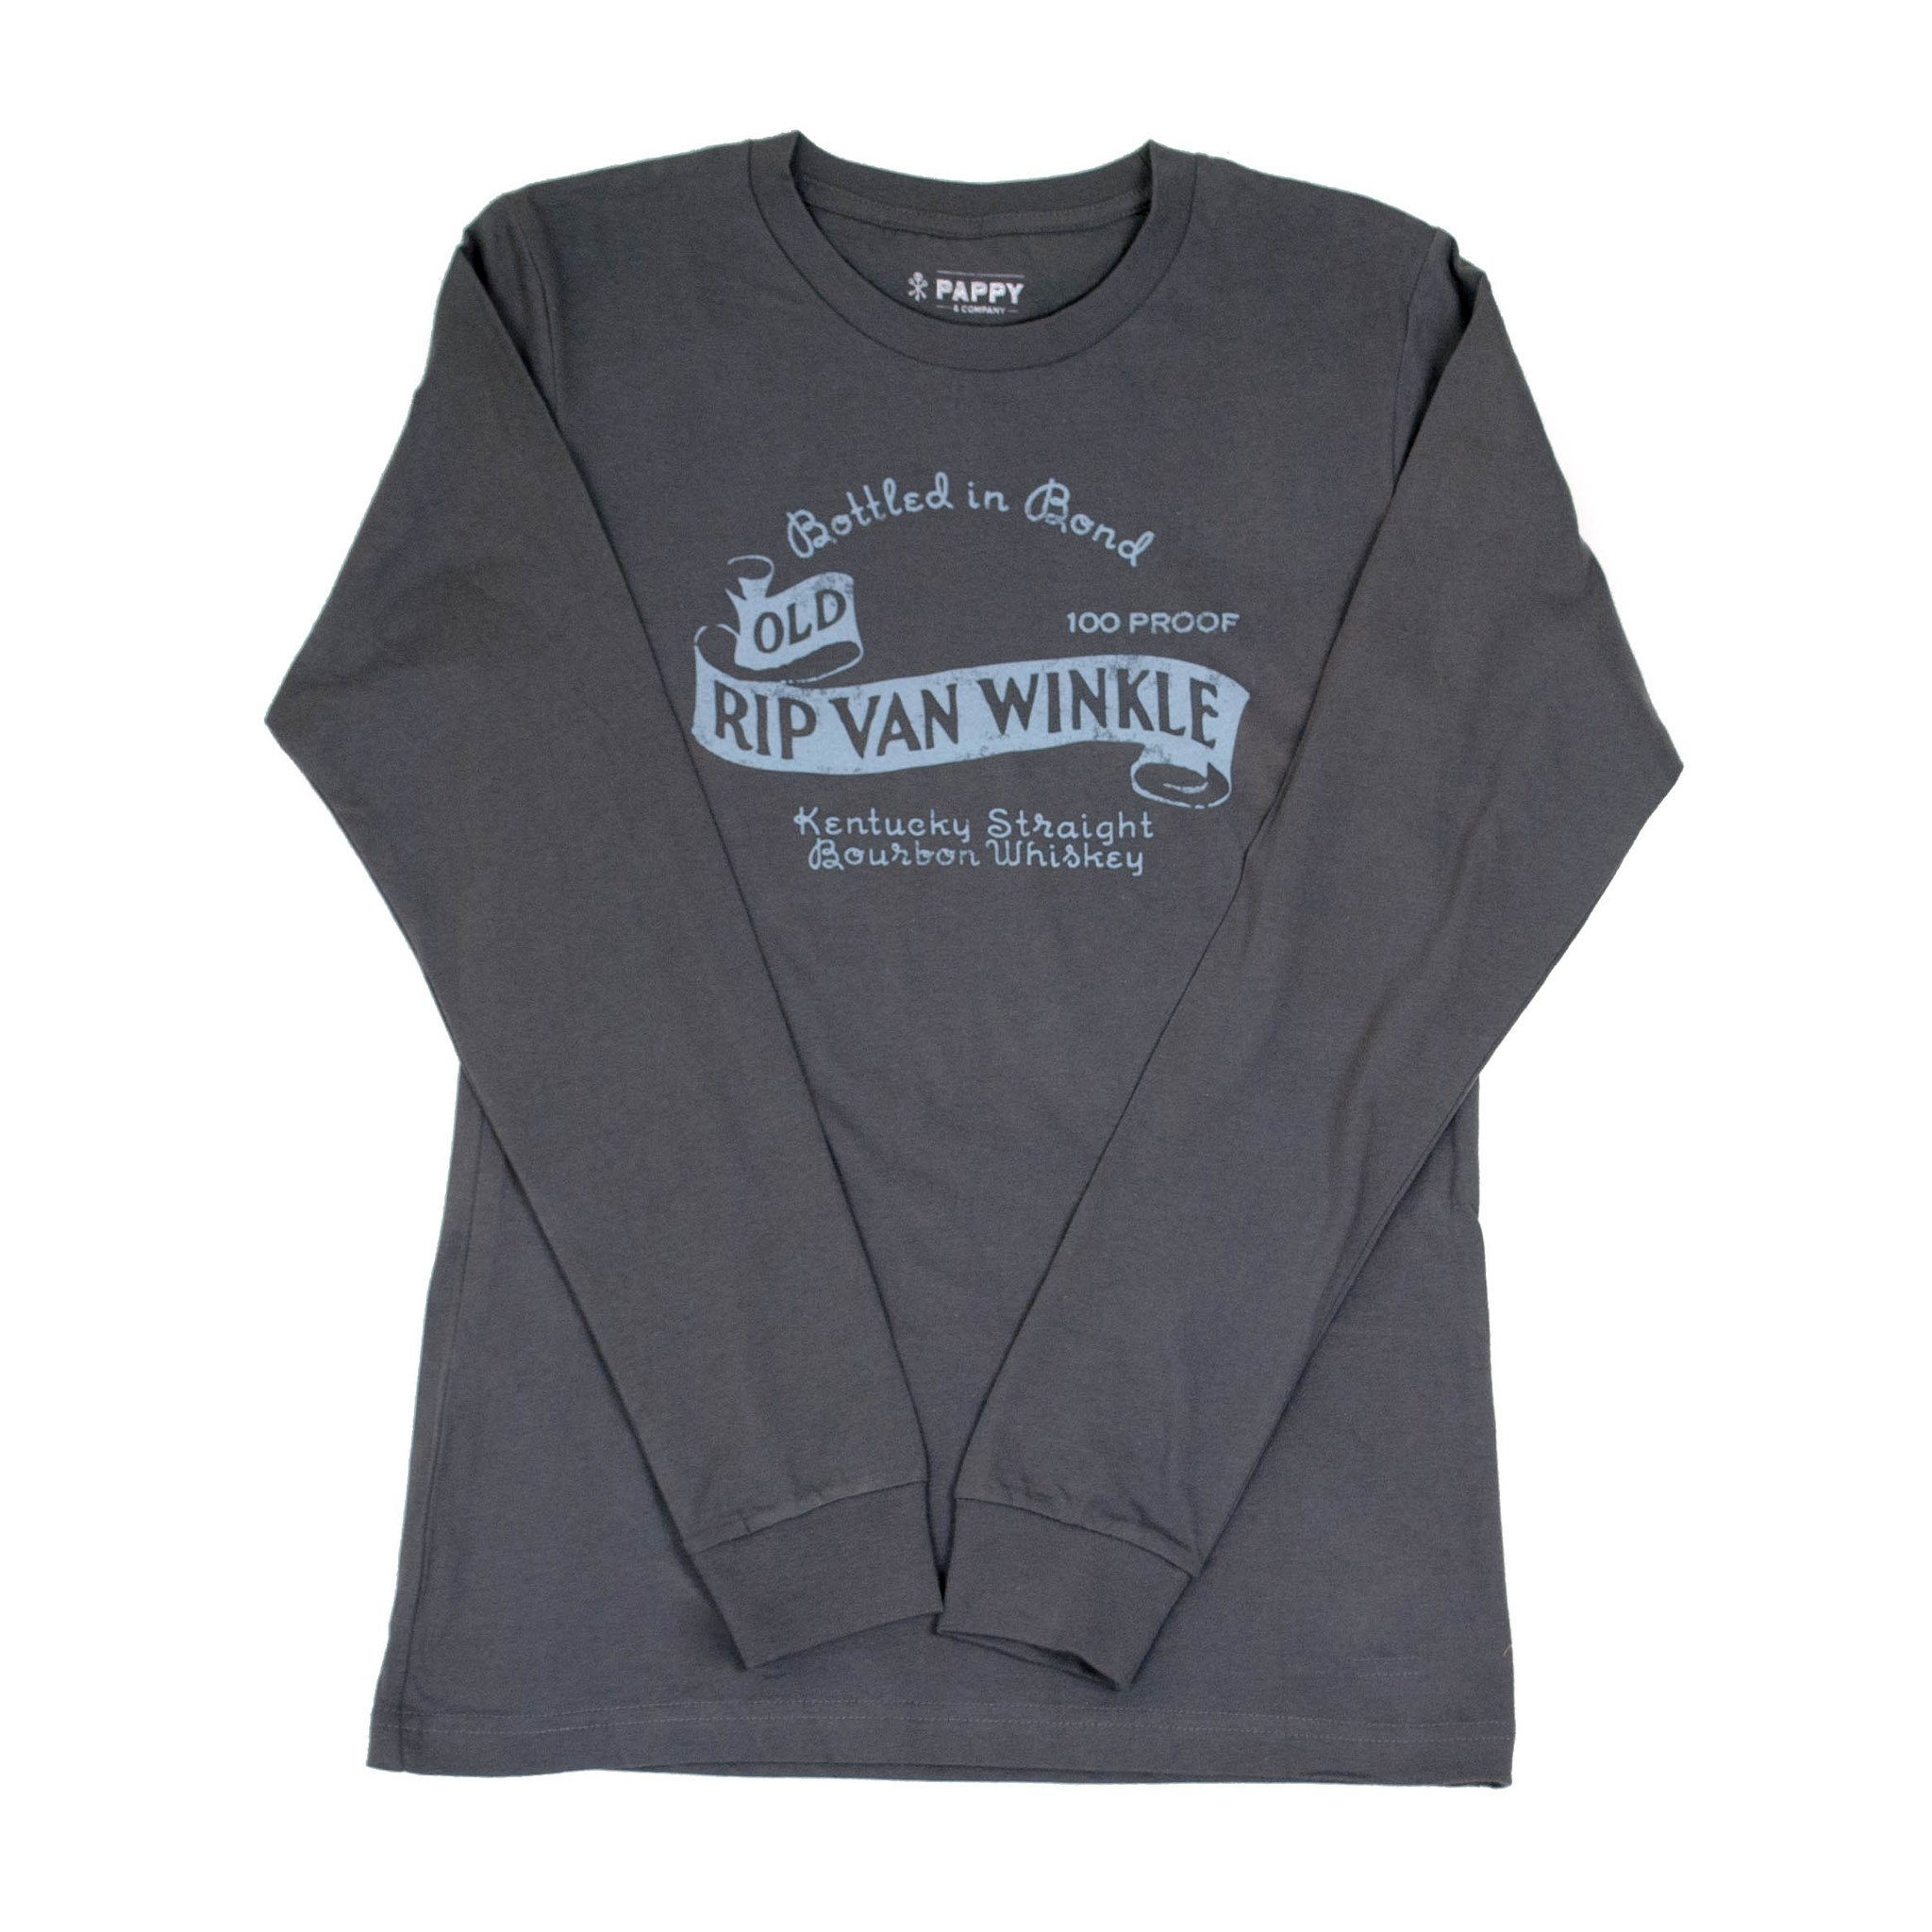 Pappy Vintage Label Shirt - Long Sleeve